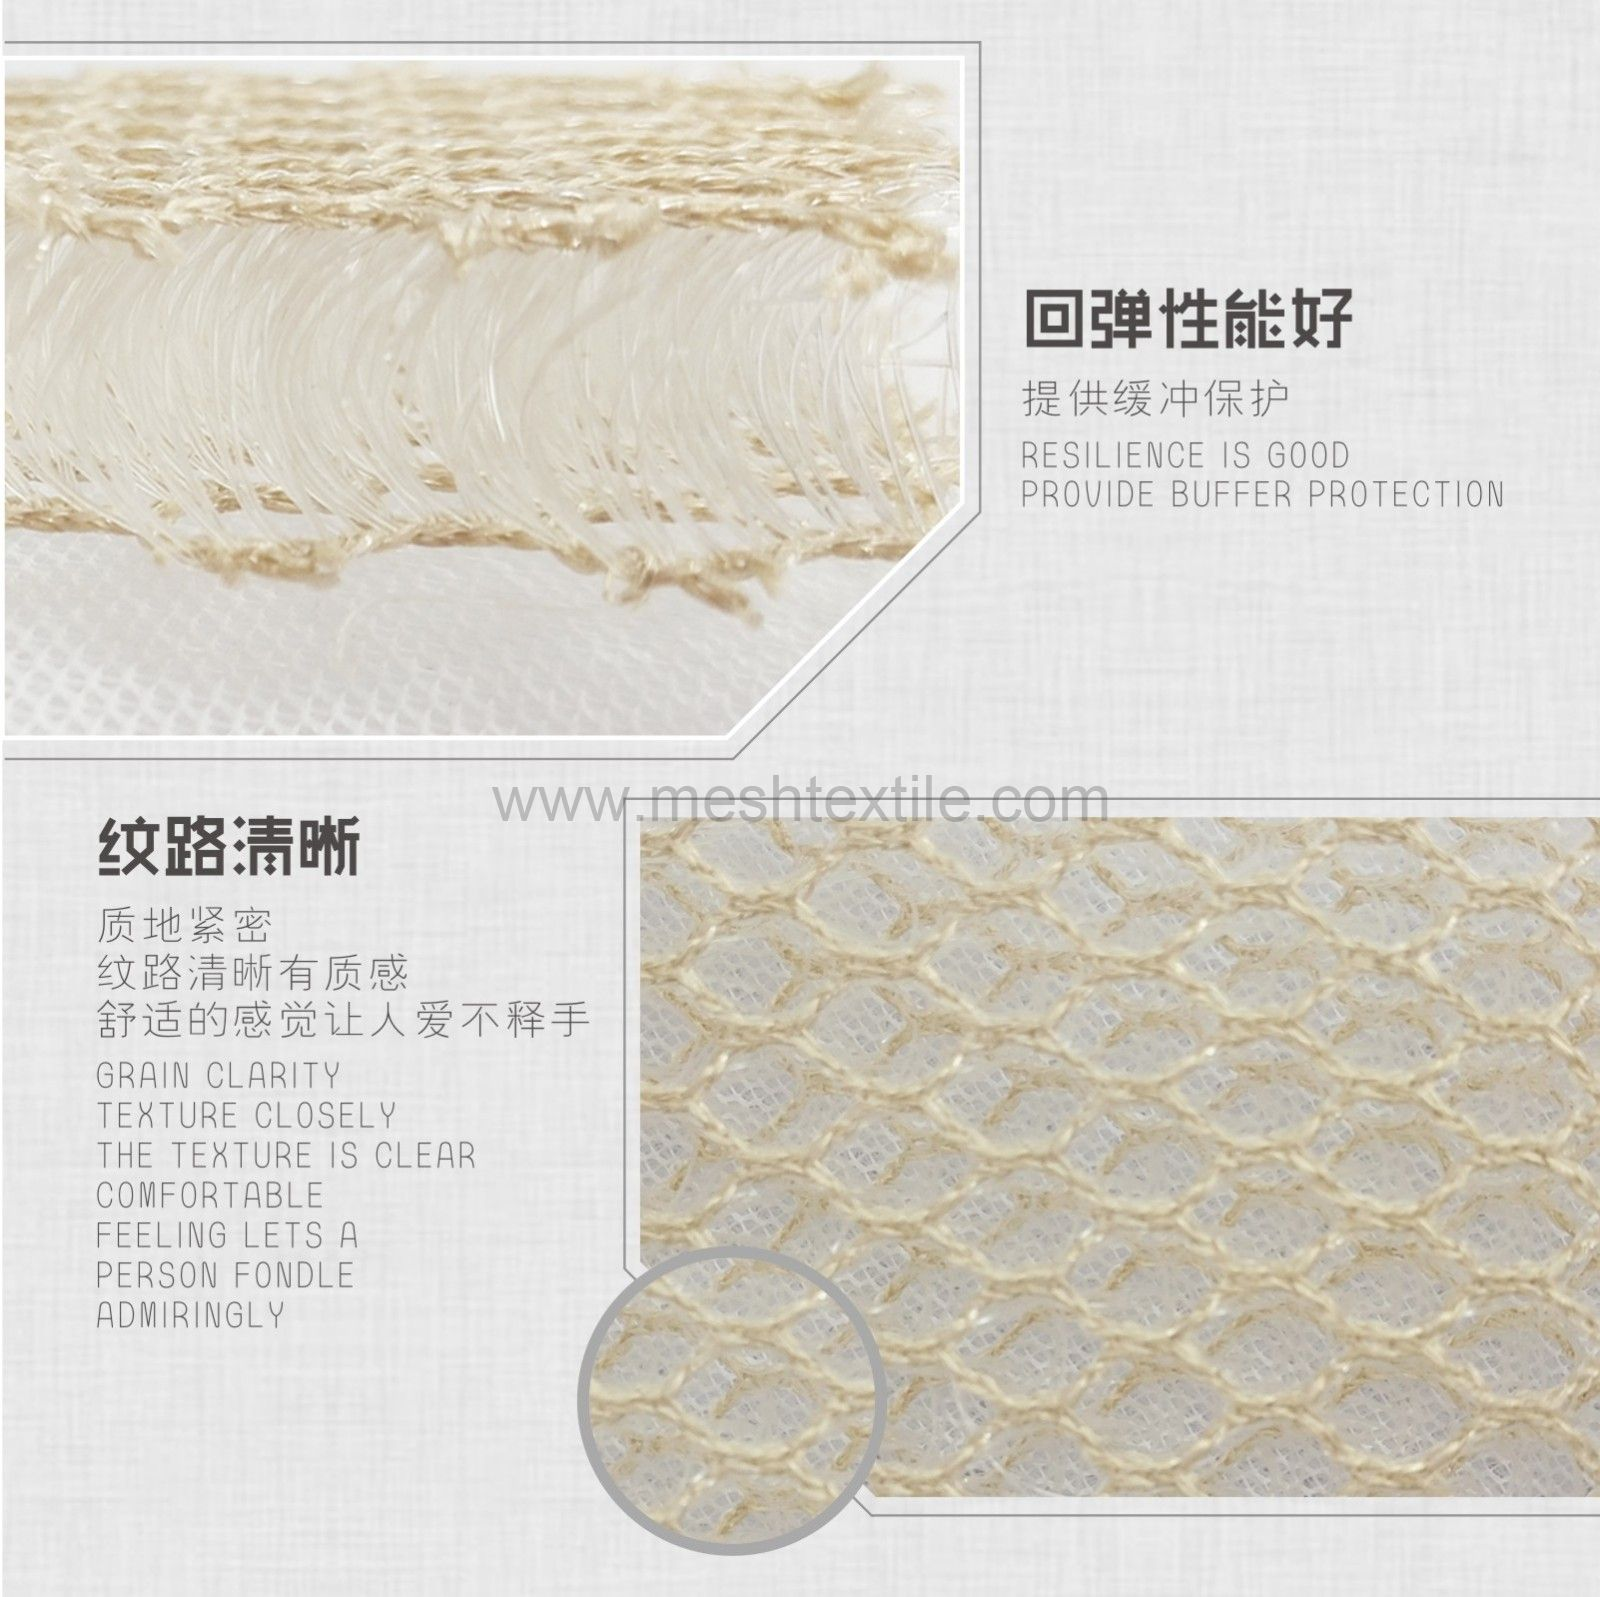 Air purification filter and humidifier filter material